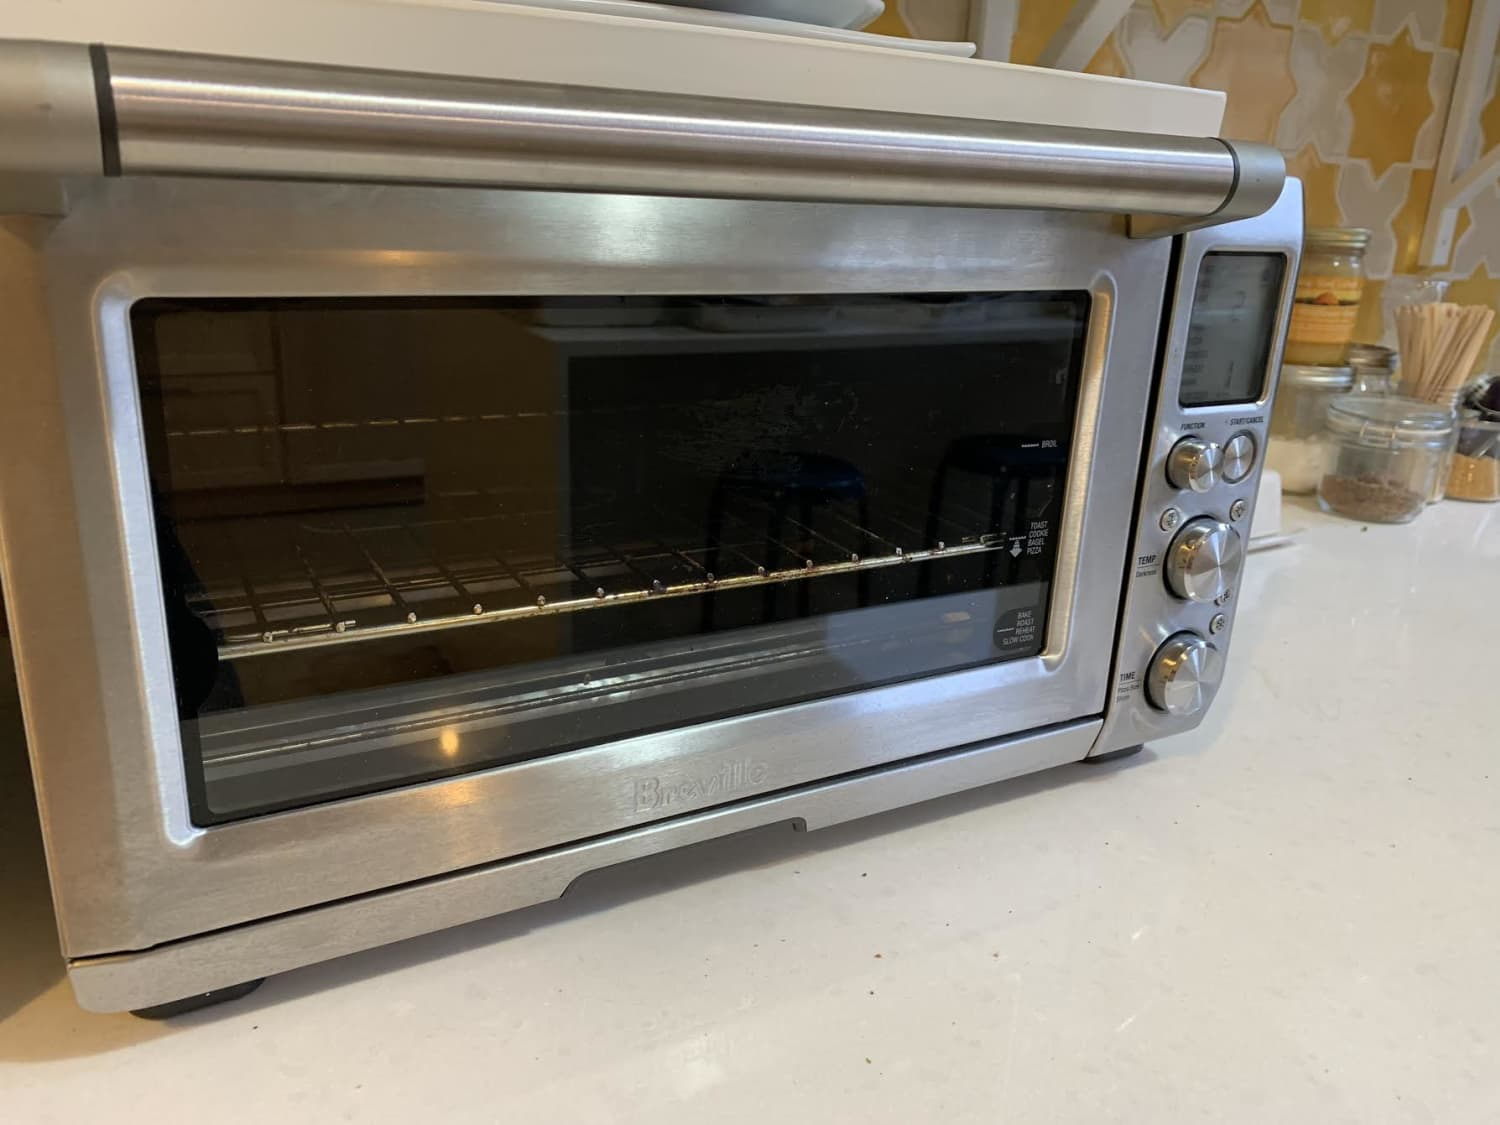 Eric Ripert S Tip For Cooking Fish In Your Toaster Oven